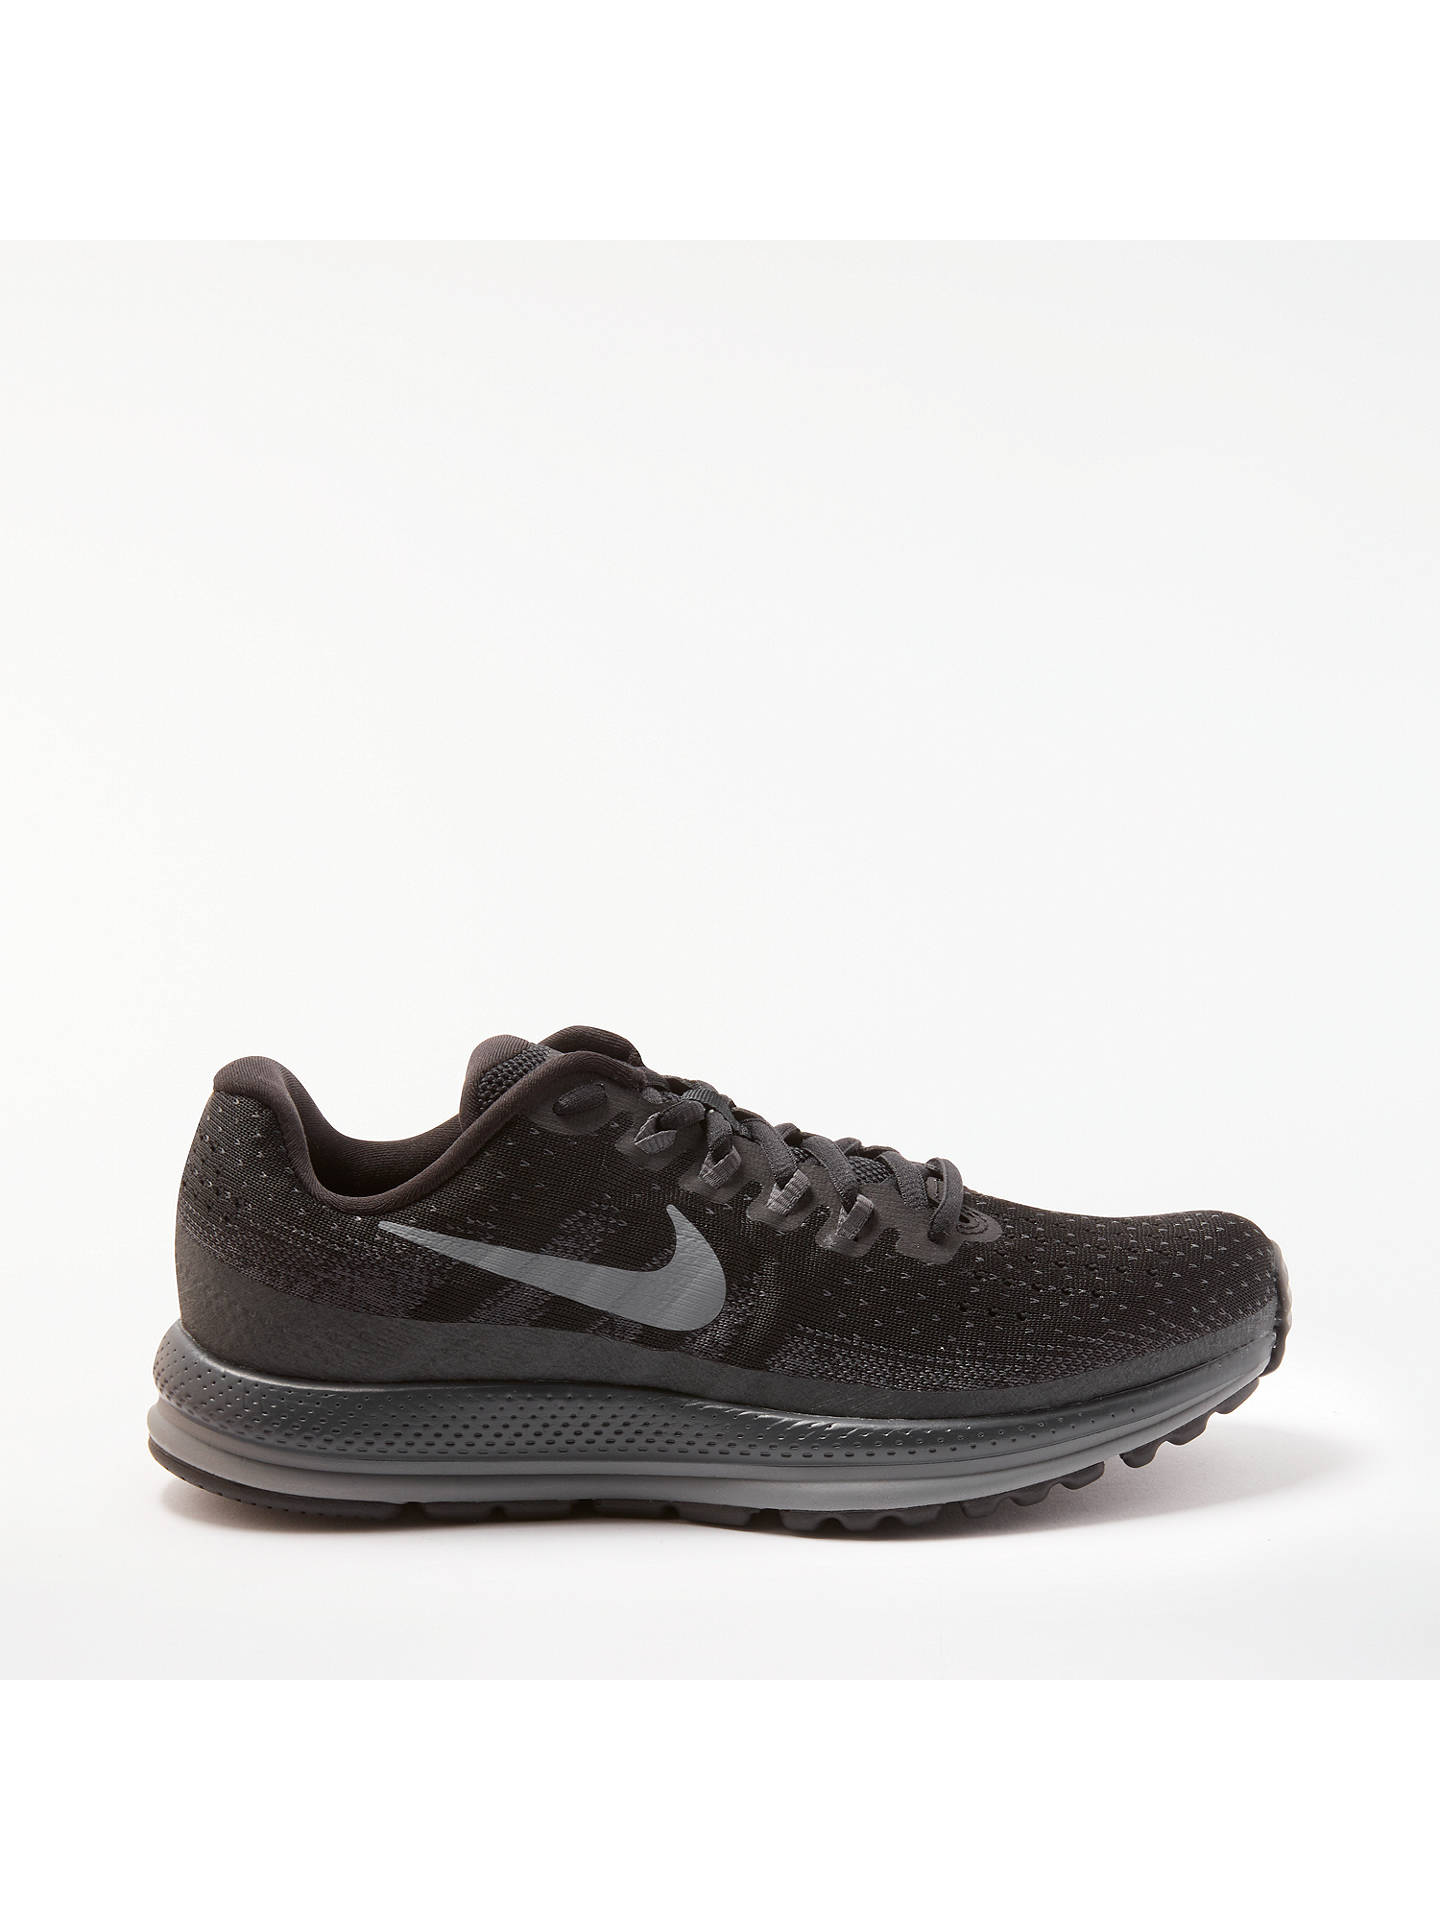 eab8af5e7bc BuyNike Air Zoom Vomero 13 Women s Running Shoes